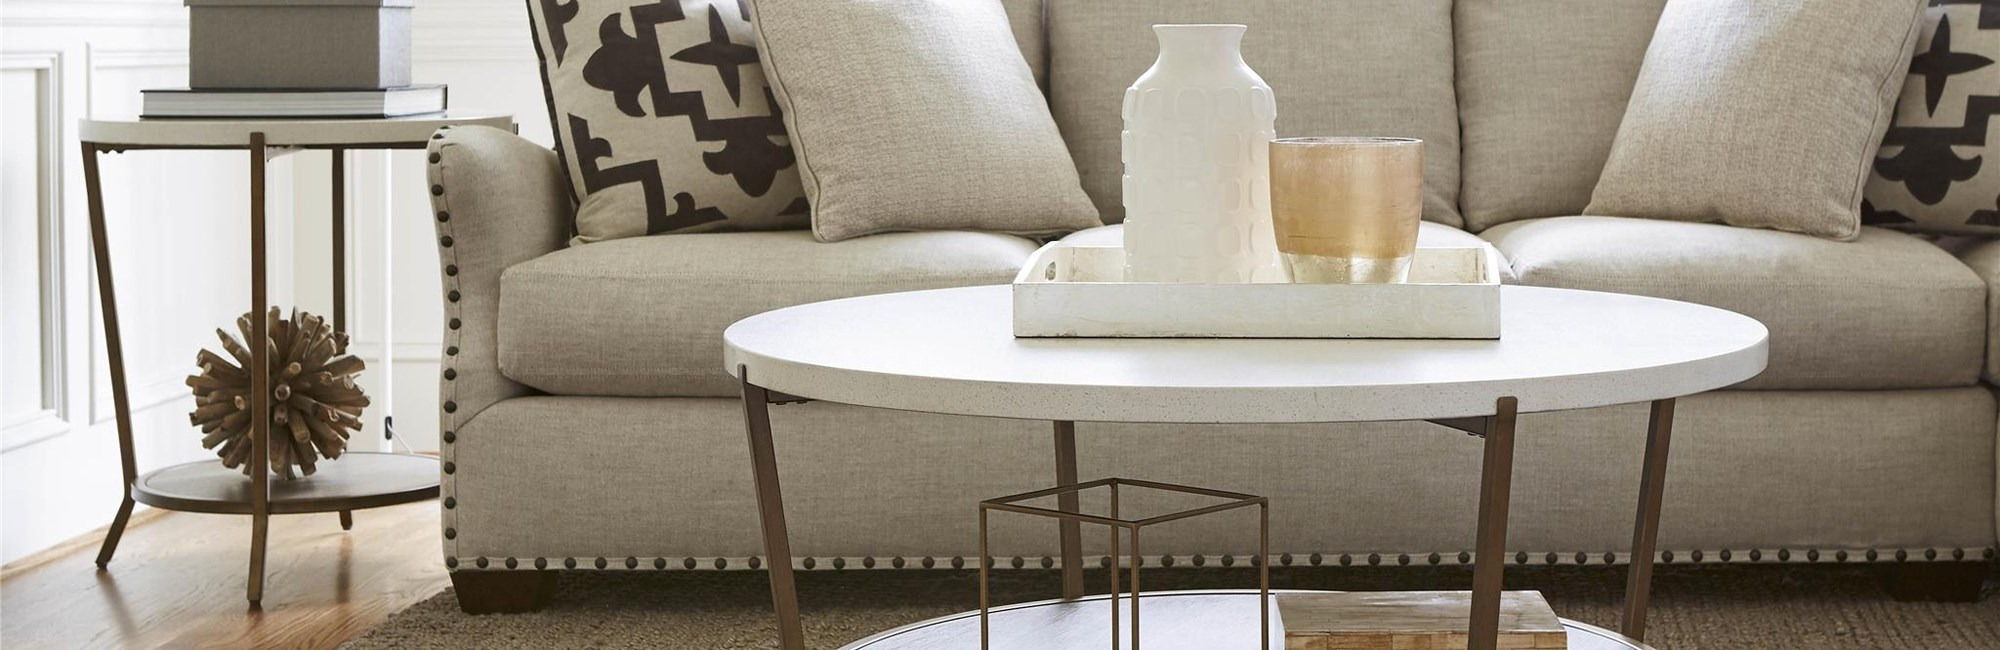 accents oahu hilo kona maui homeworld furniture new accent table behind couch tables square tablecloth vintage ese lamps pier locations small drop leaf kitchen chairs silver